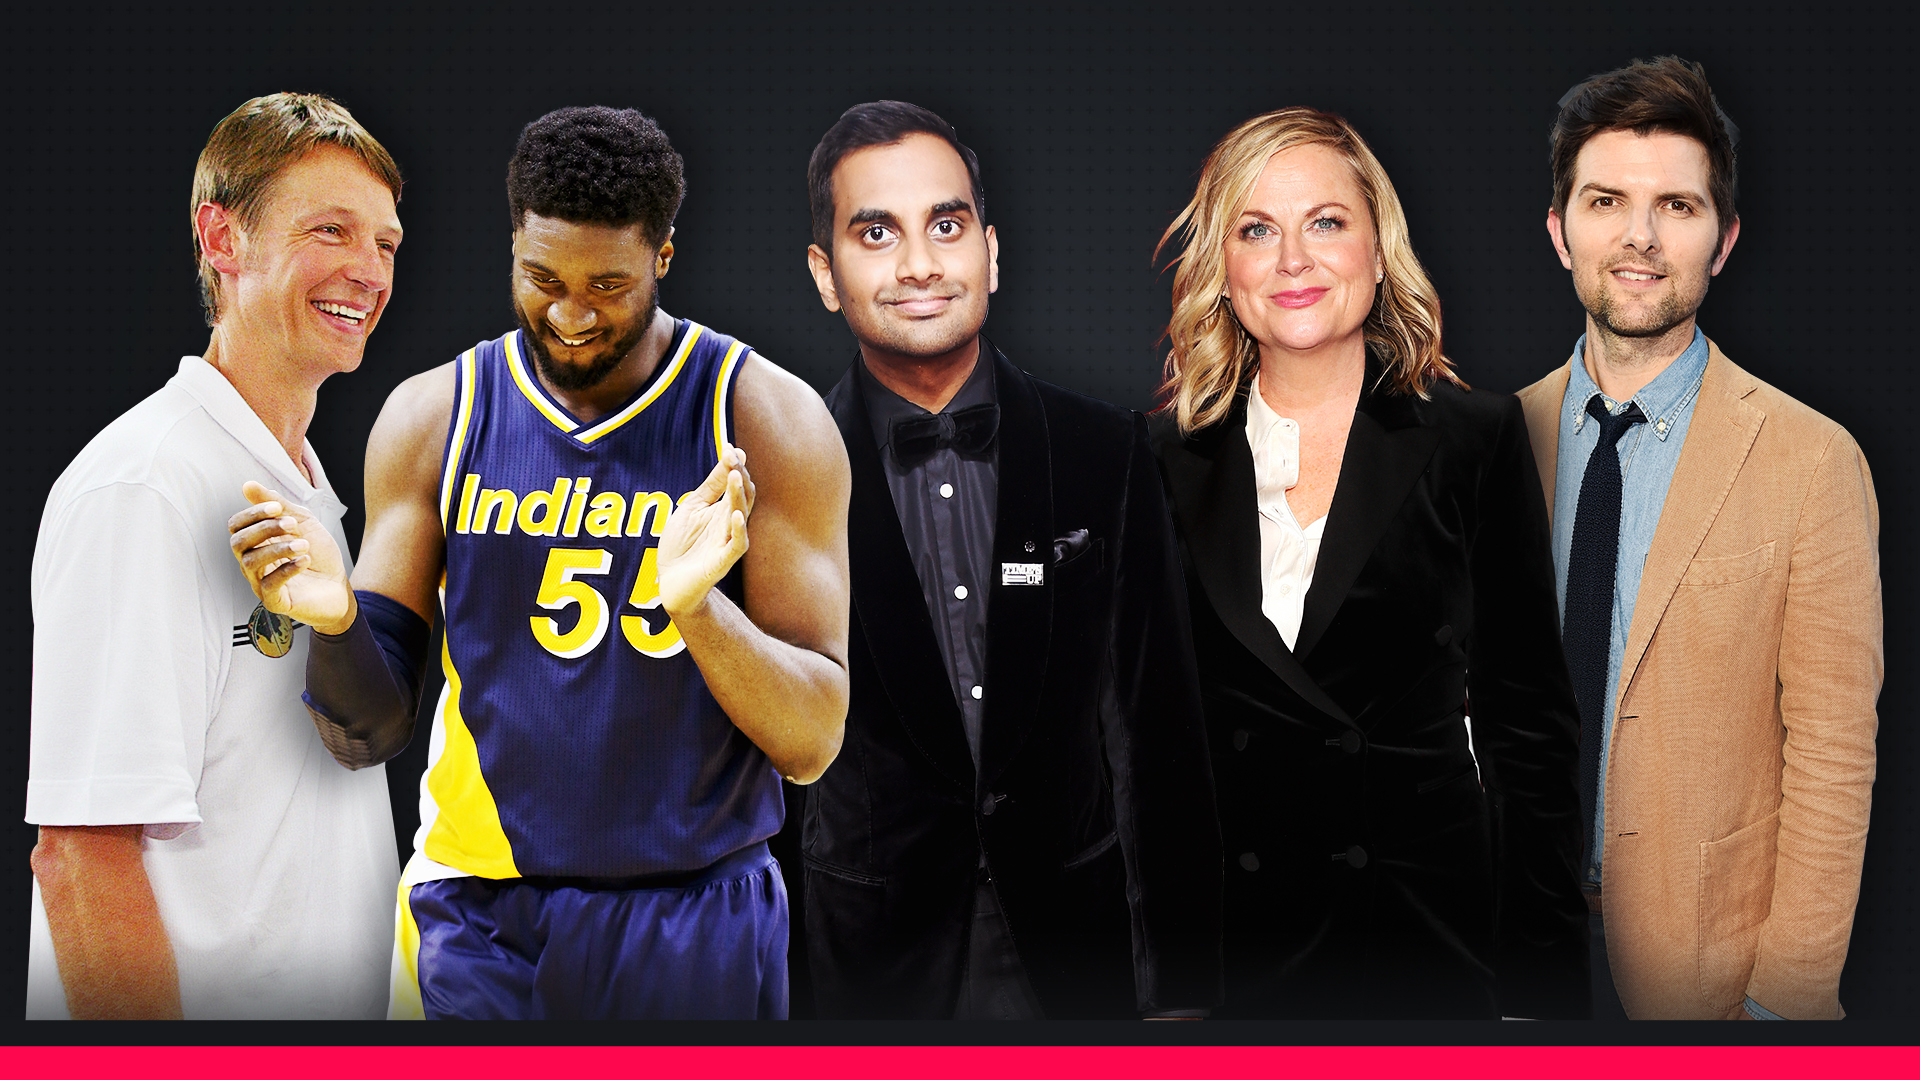 Pawnee and the Pacers: How Detlef Schrempf and Roy Hibbert made cameos on 'Parks and Recreation'